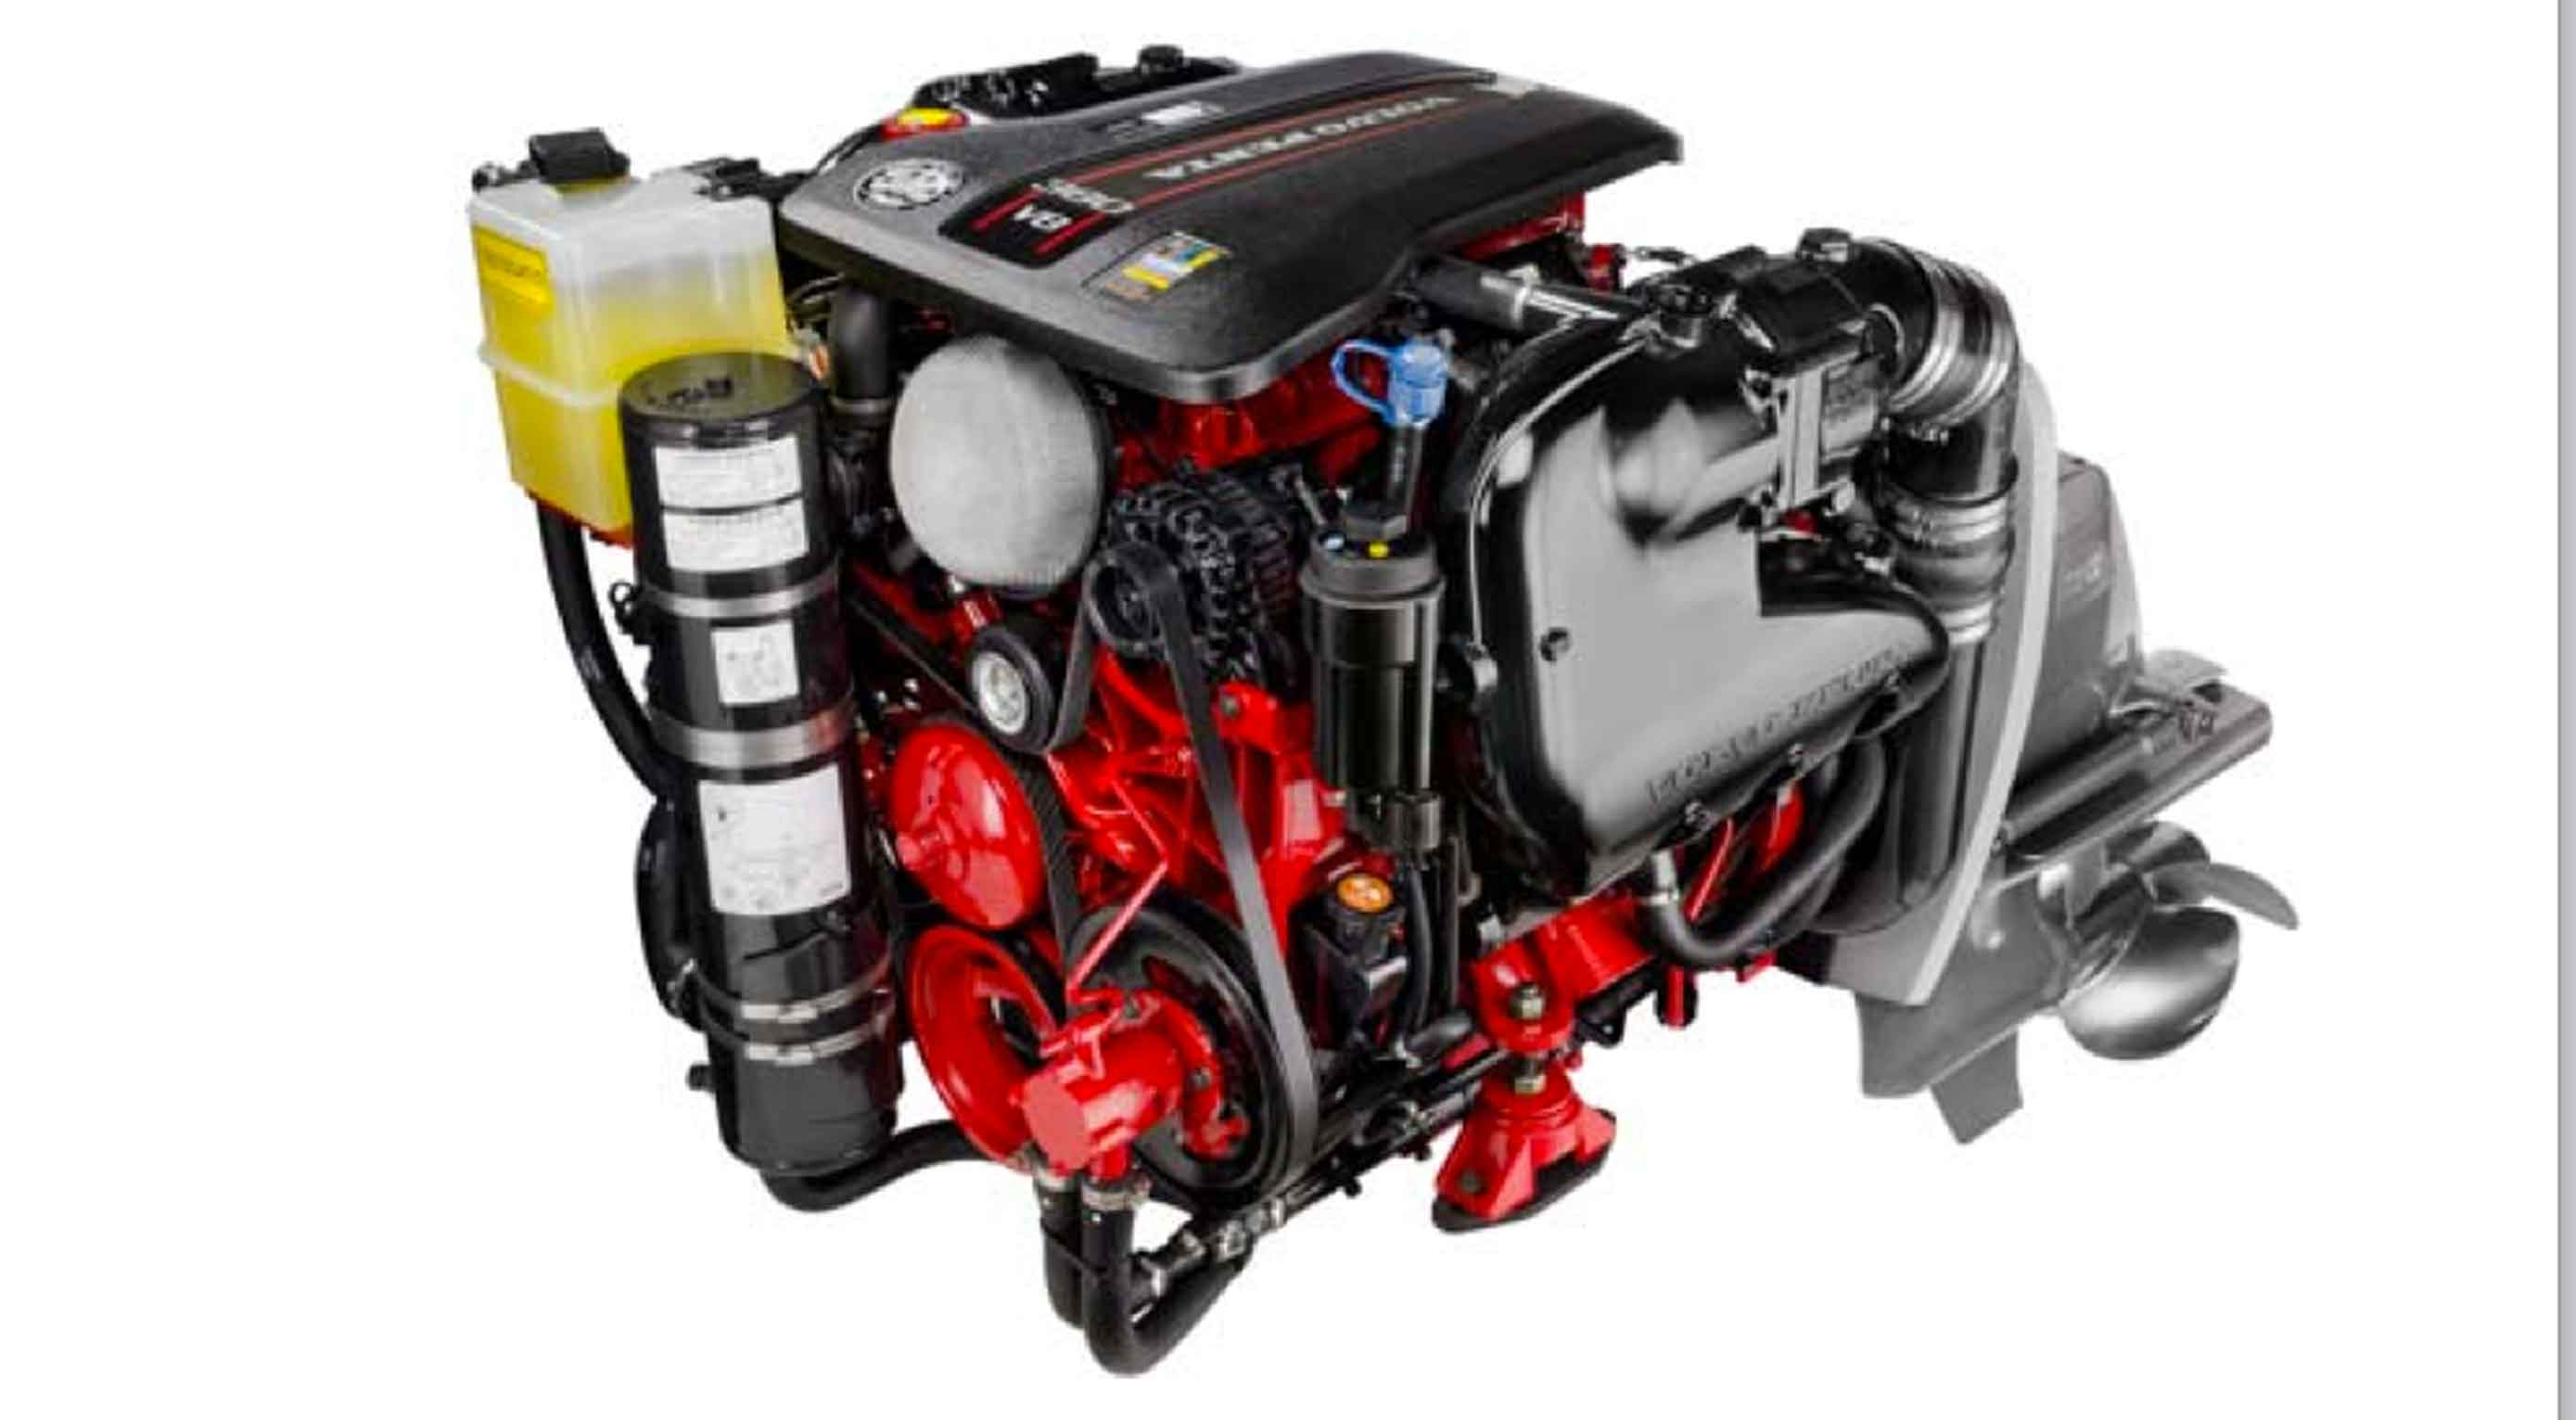 Volvo Penta 5 7 Engine Wiring Diagram